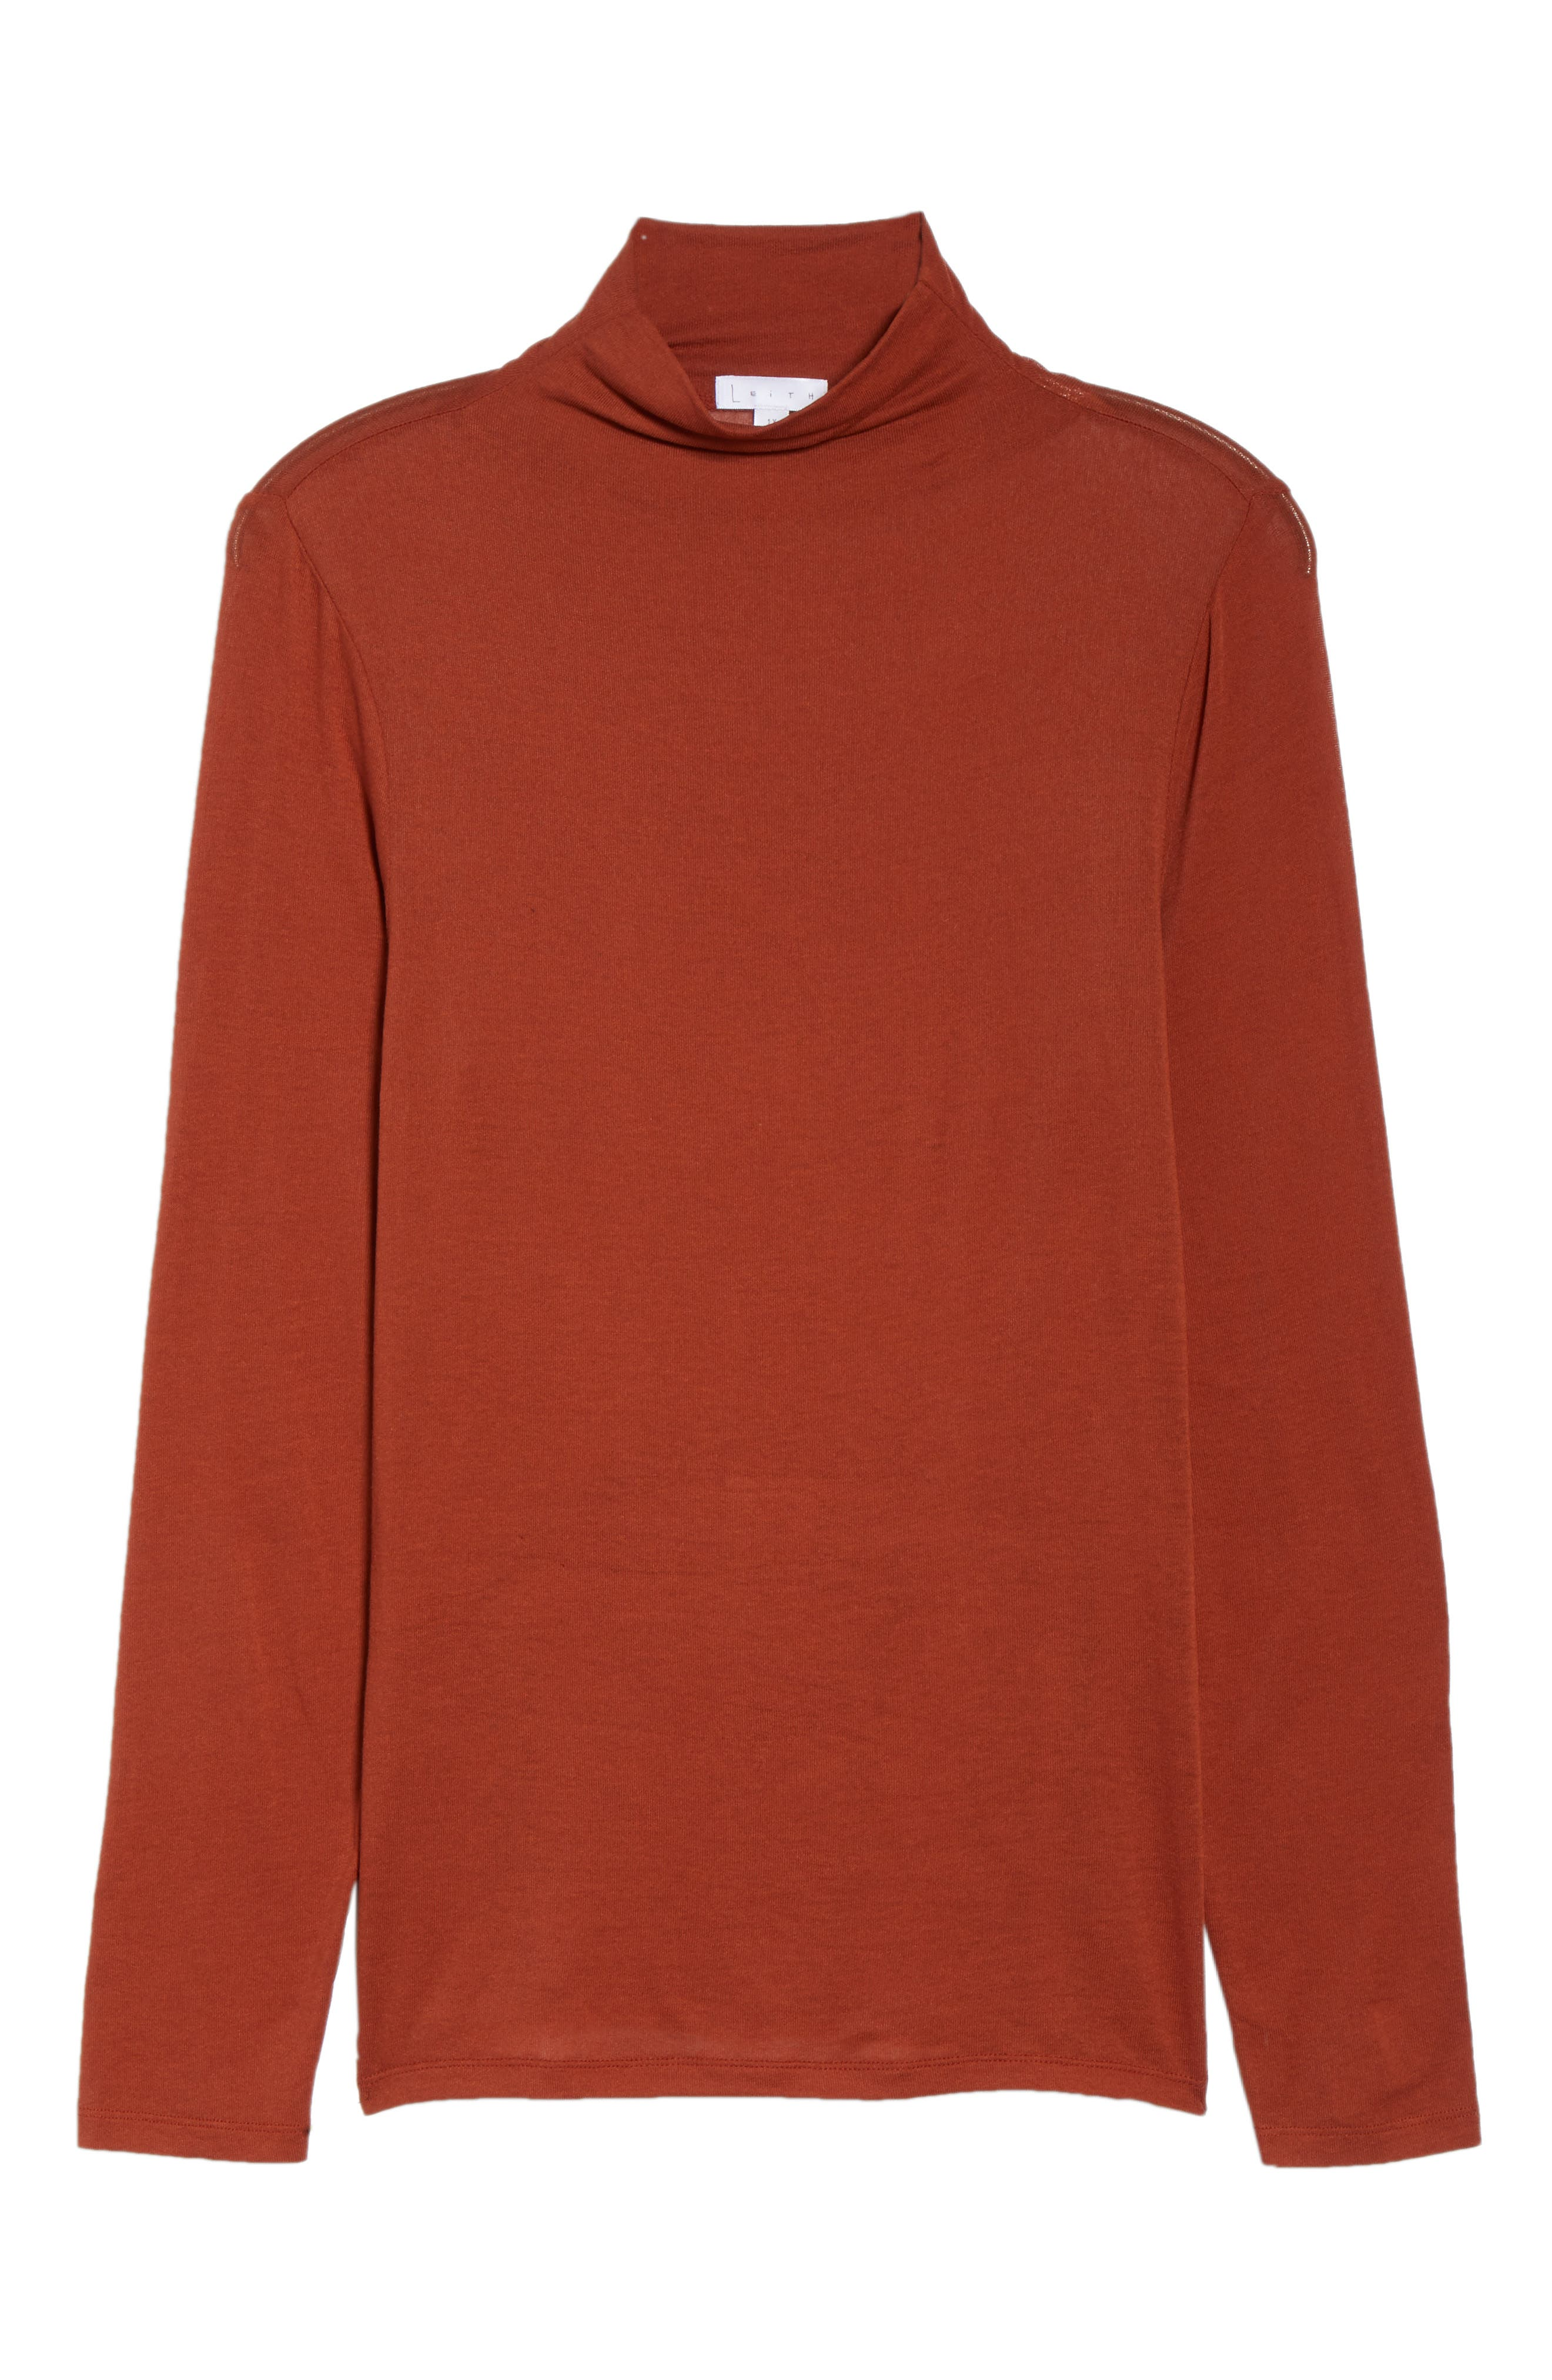 Lightweight Long Sleeve Funnel Neck Top,                             Alternate thumbnail 12, color,                             BROWN SPICE